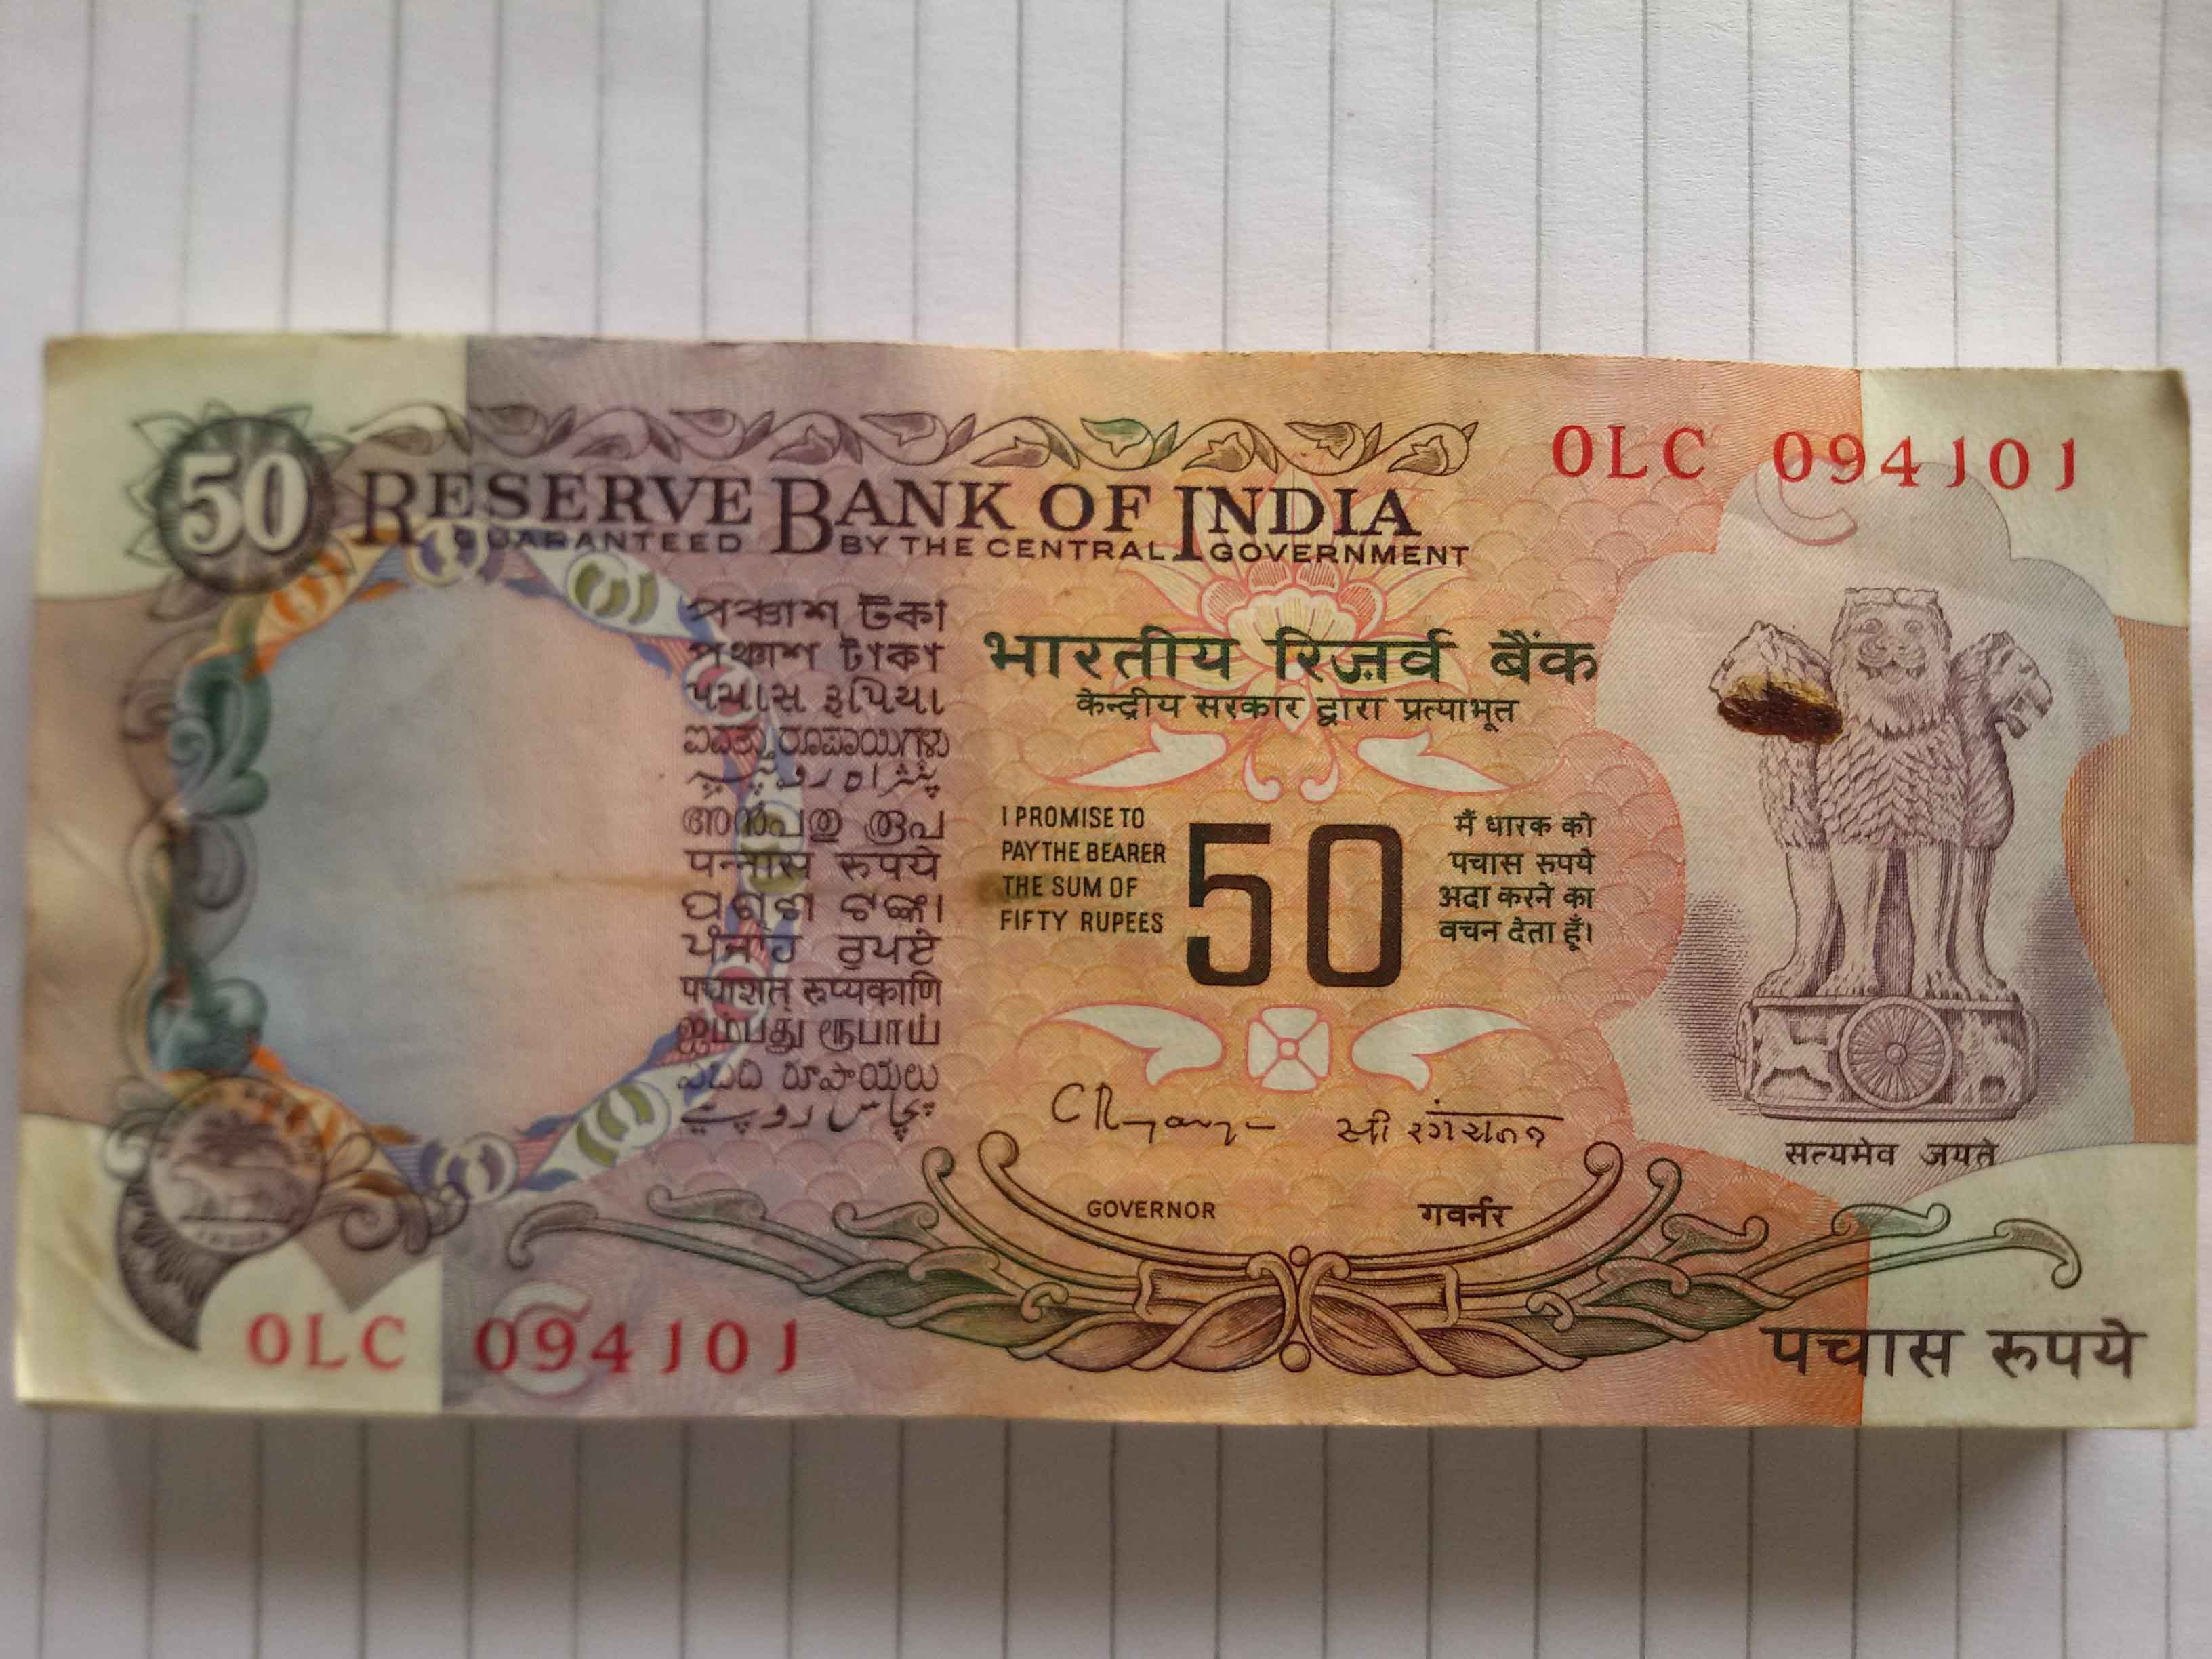 INDIA 50RS BANKNOTE, Banknotes Sale, Banknote Collection